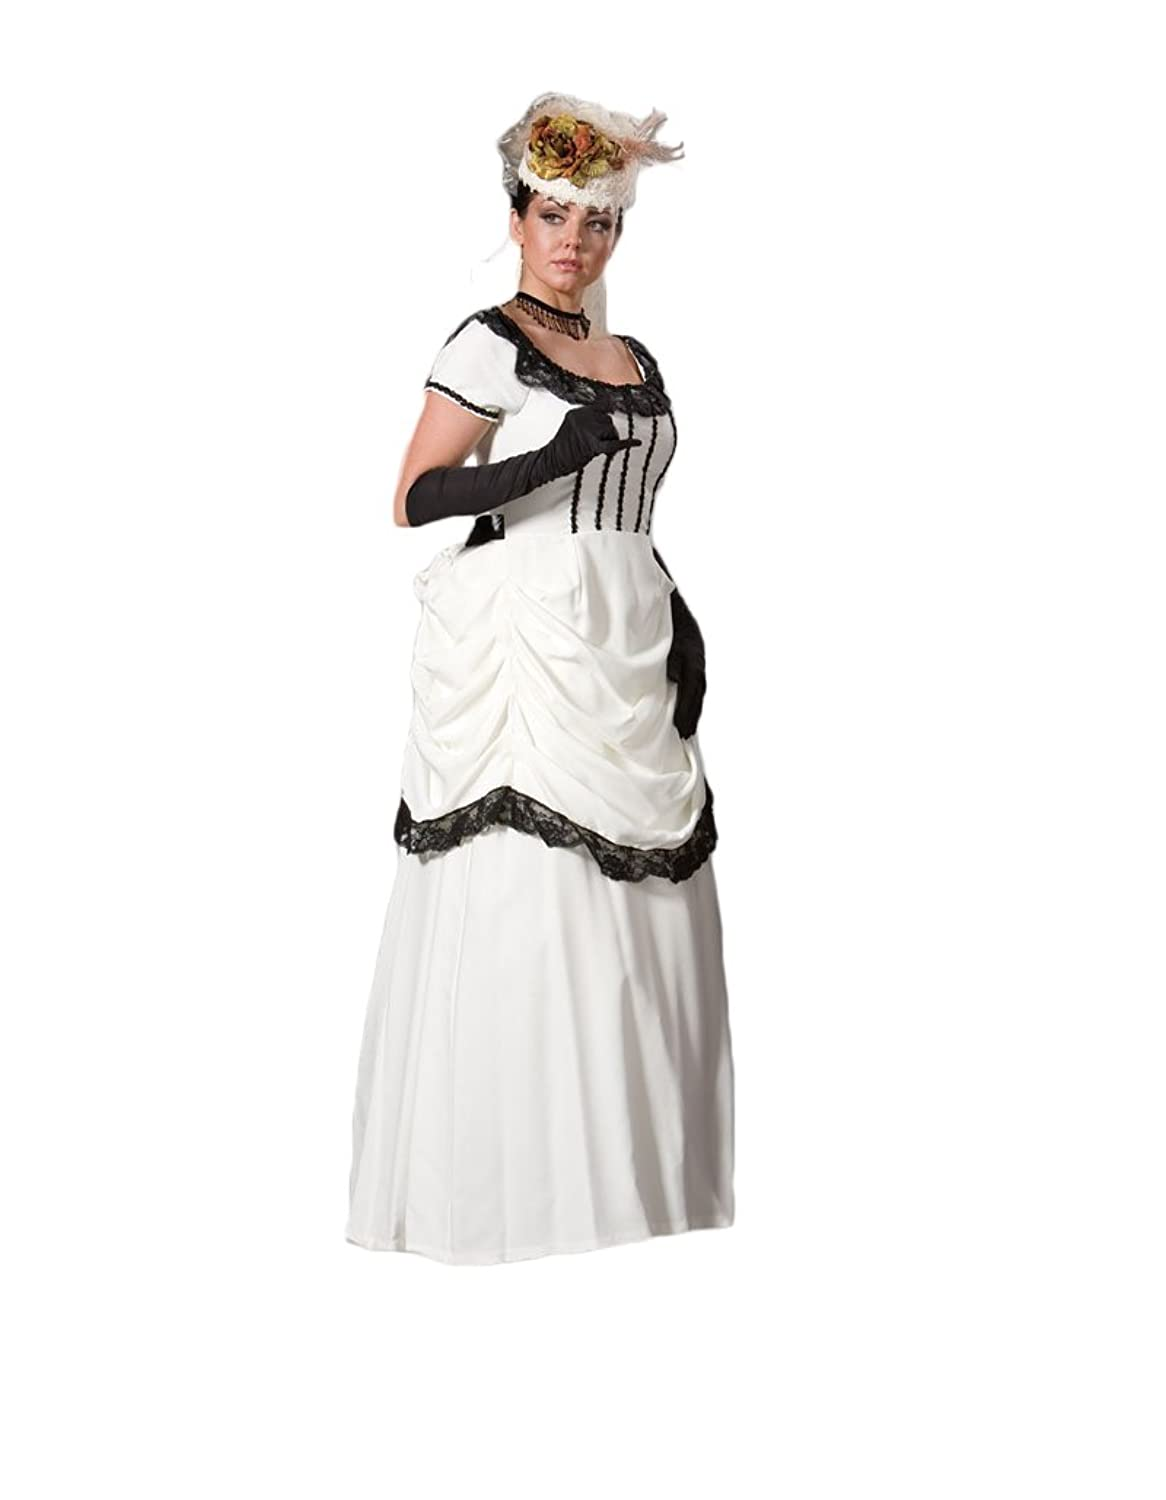 Vintage Inspired Wedding Dress | Vintage Style Wedding Dresses Womens White Victorian Emma Dress Theater Costume $239.99 AT vintagedancer.com